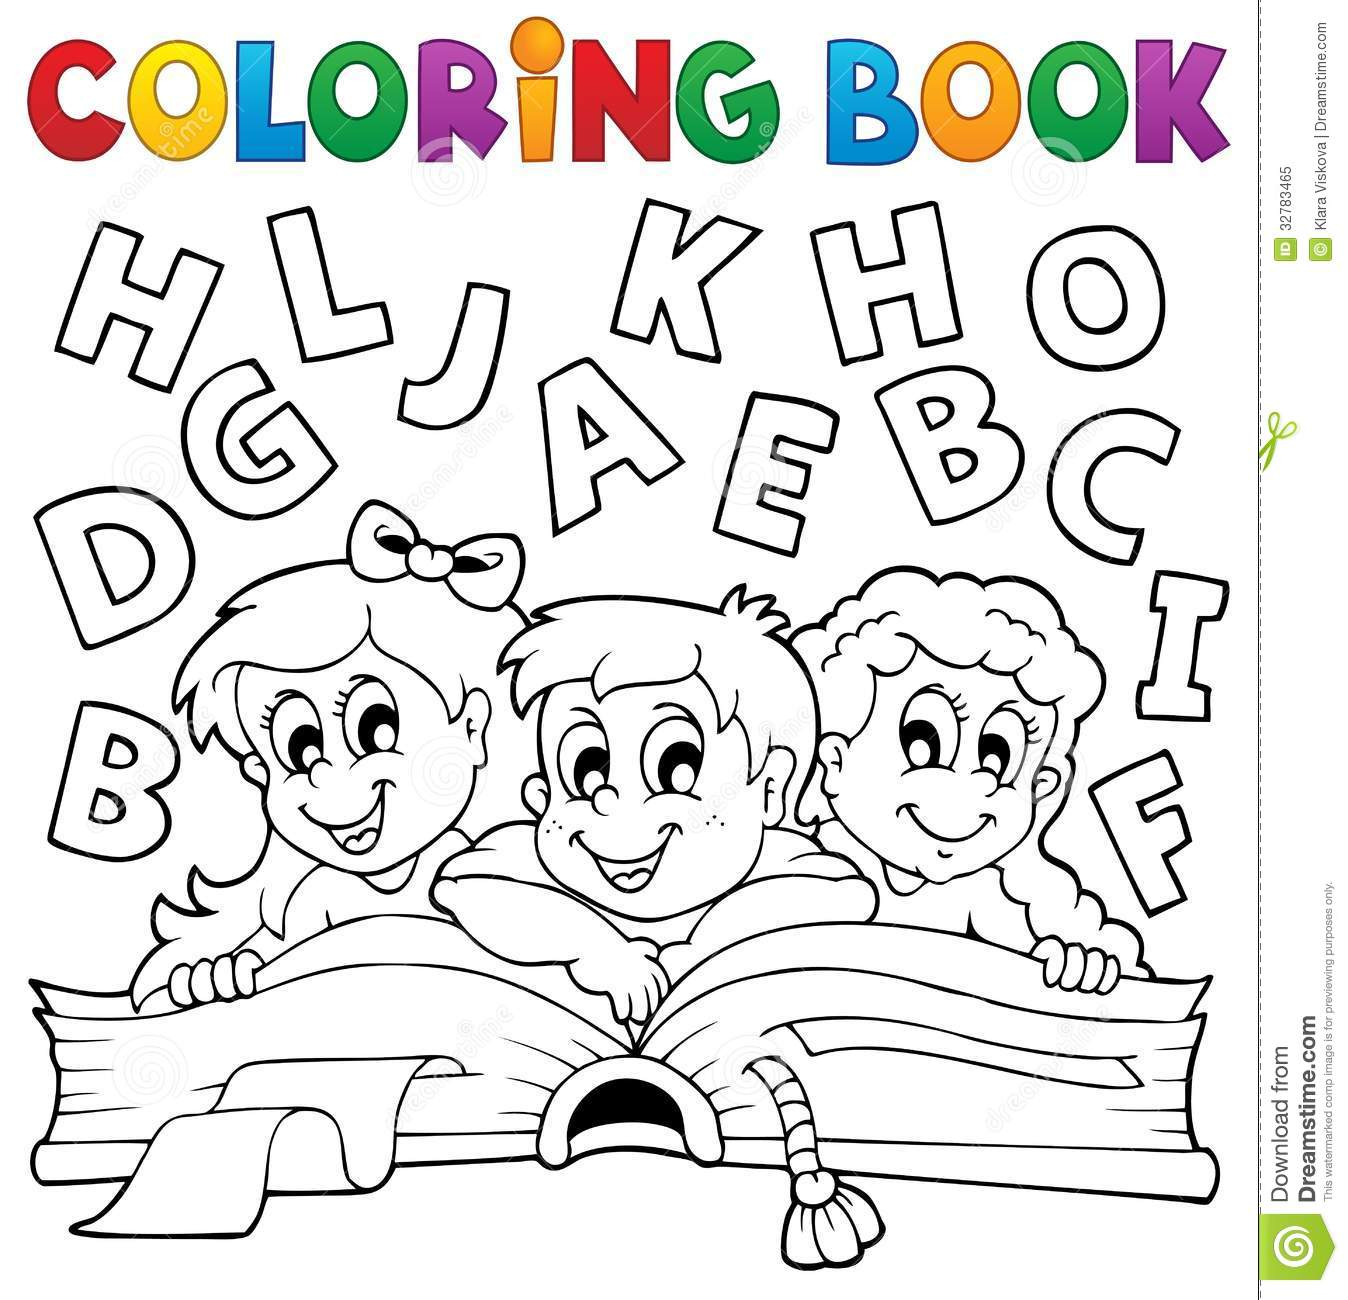 Free Coloring Books For Children